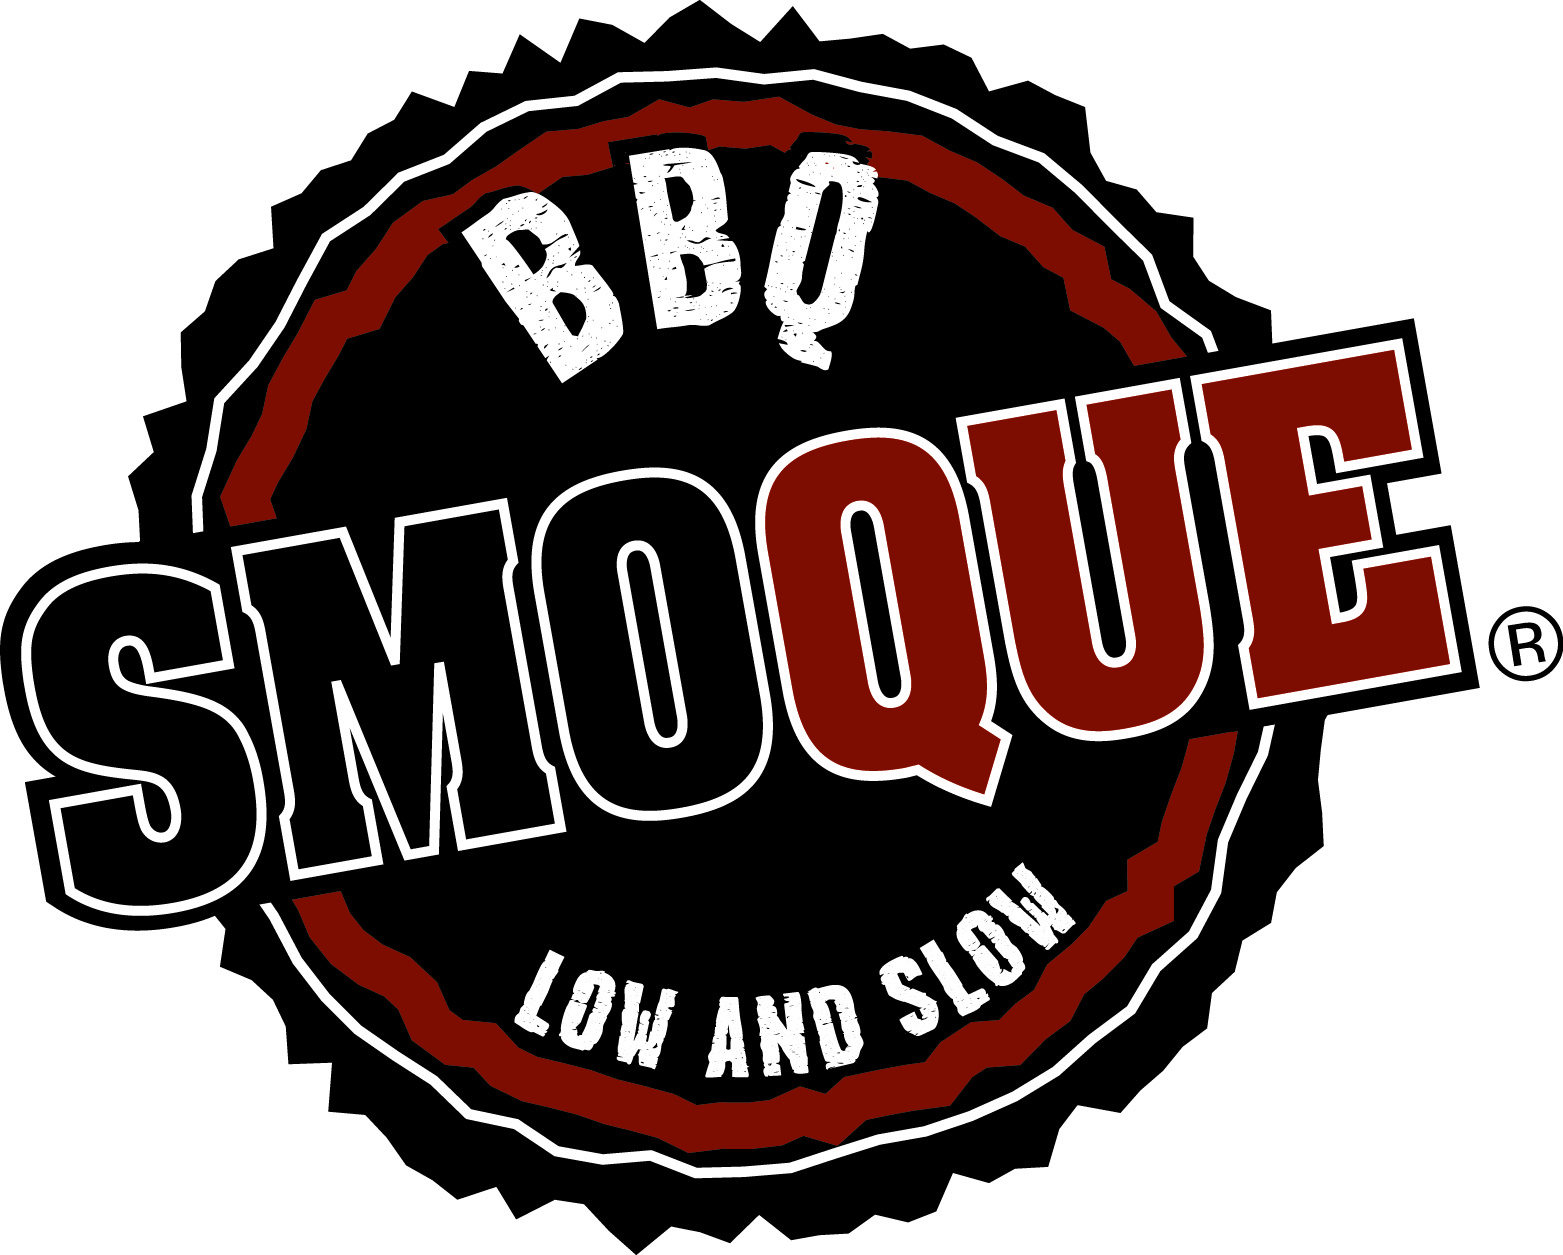 Smoque logo